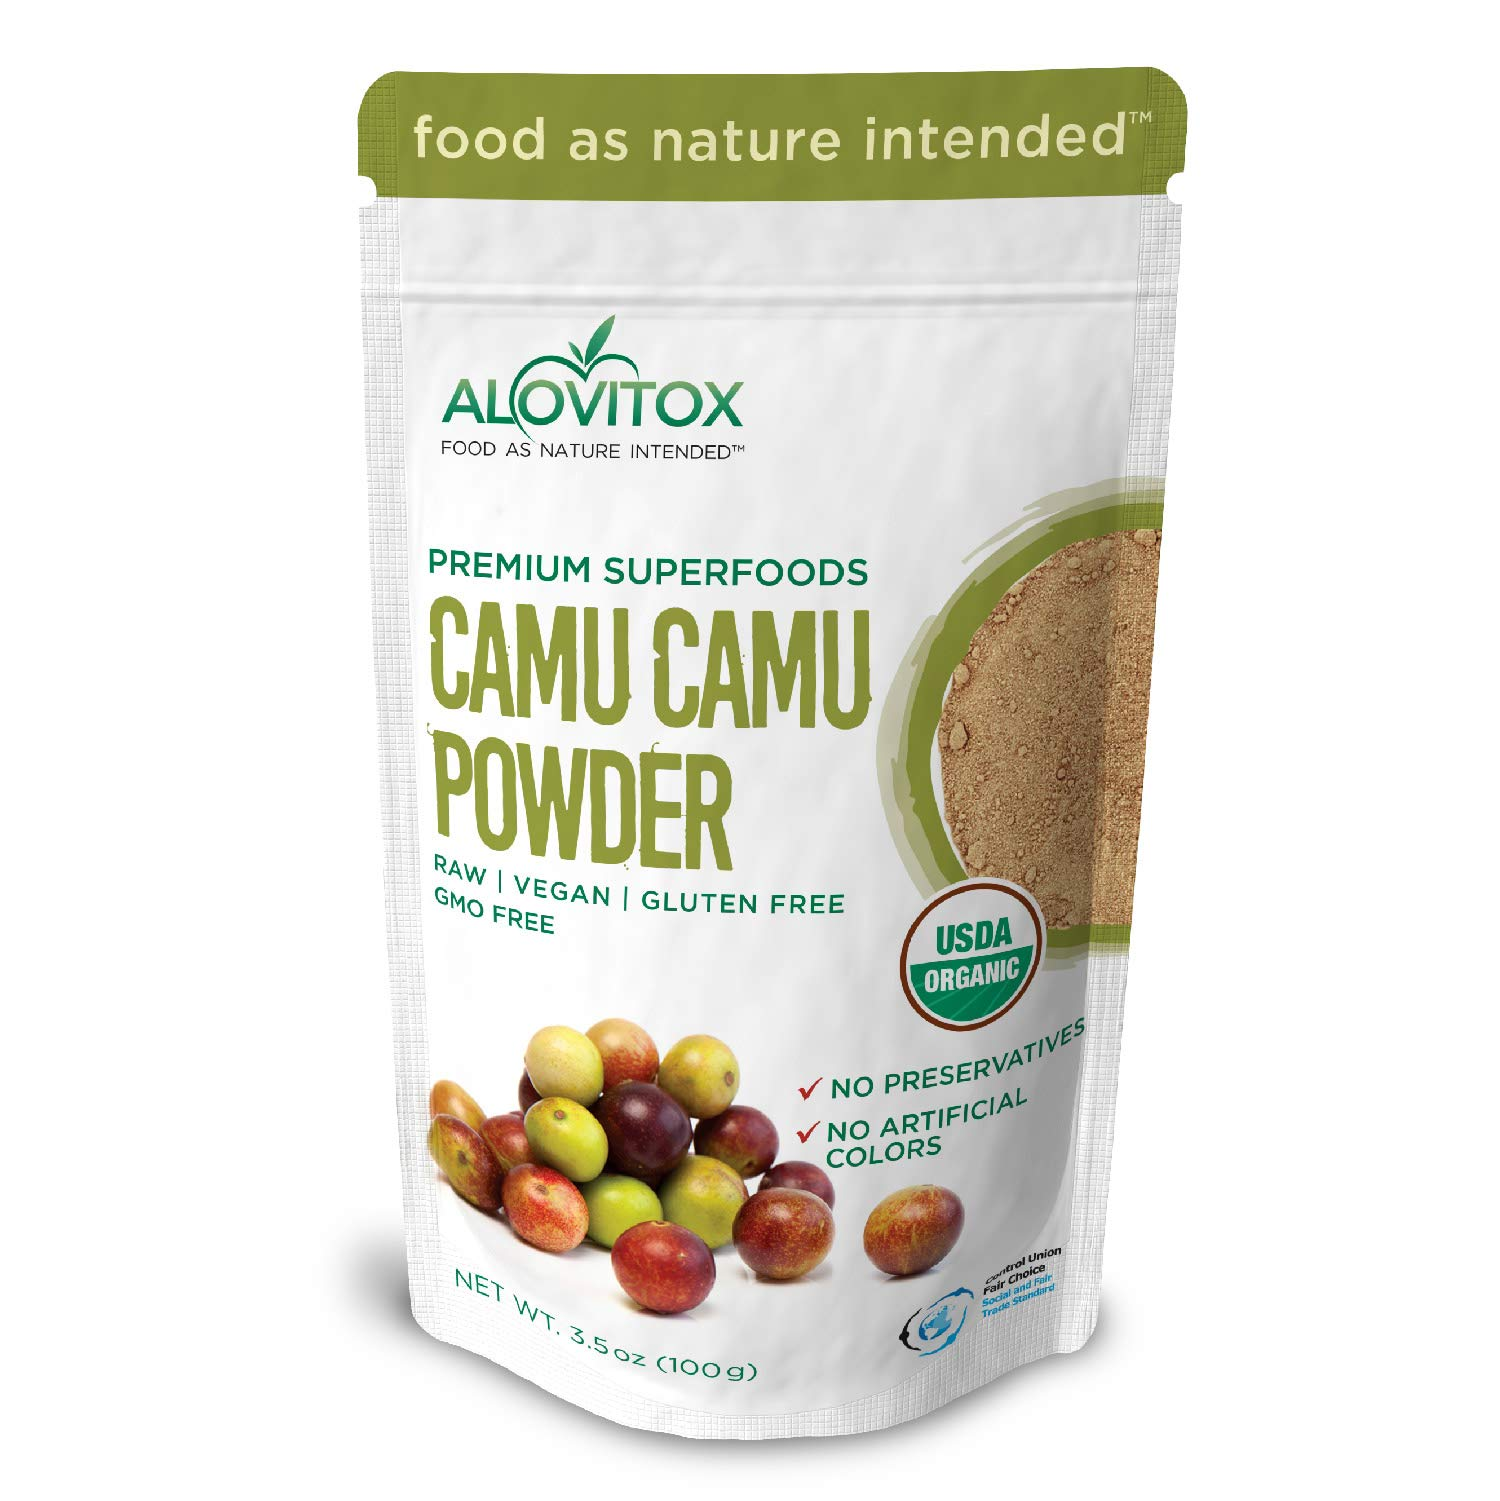 Organic Camu Camu Berry Powder | Naturally Energizing Immune Boosting Vitamin C, Antioxidants, and Proteins | Raw, Pure, Gluten Free, Vegan, Non GMO Peruvian Camu Camu Powder by Alovitox | 3.5 oz Bag